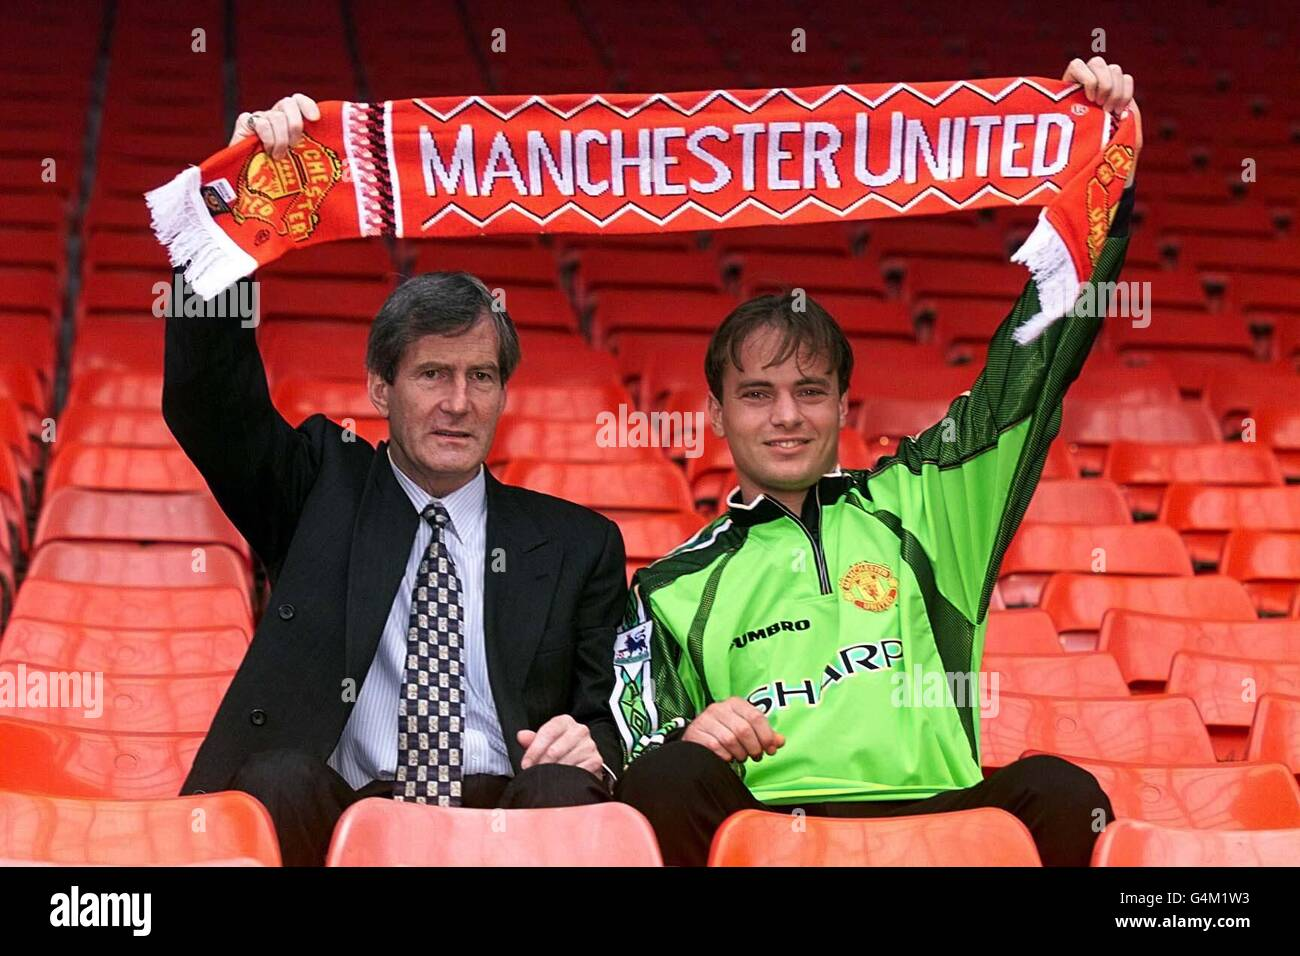 Man Utd/Bosnich & Edwards - Stock Image